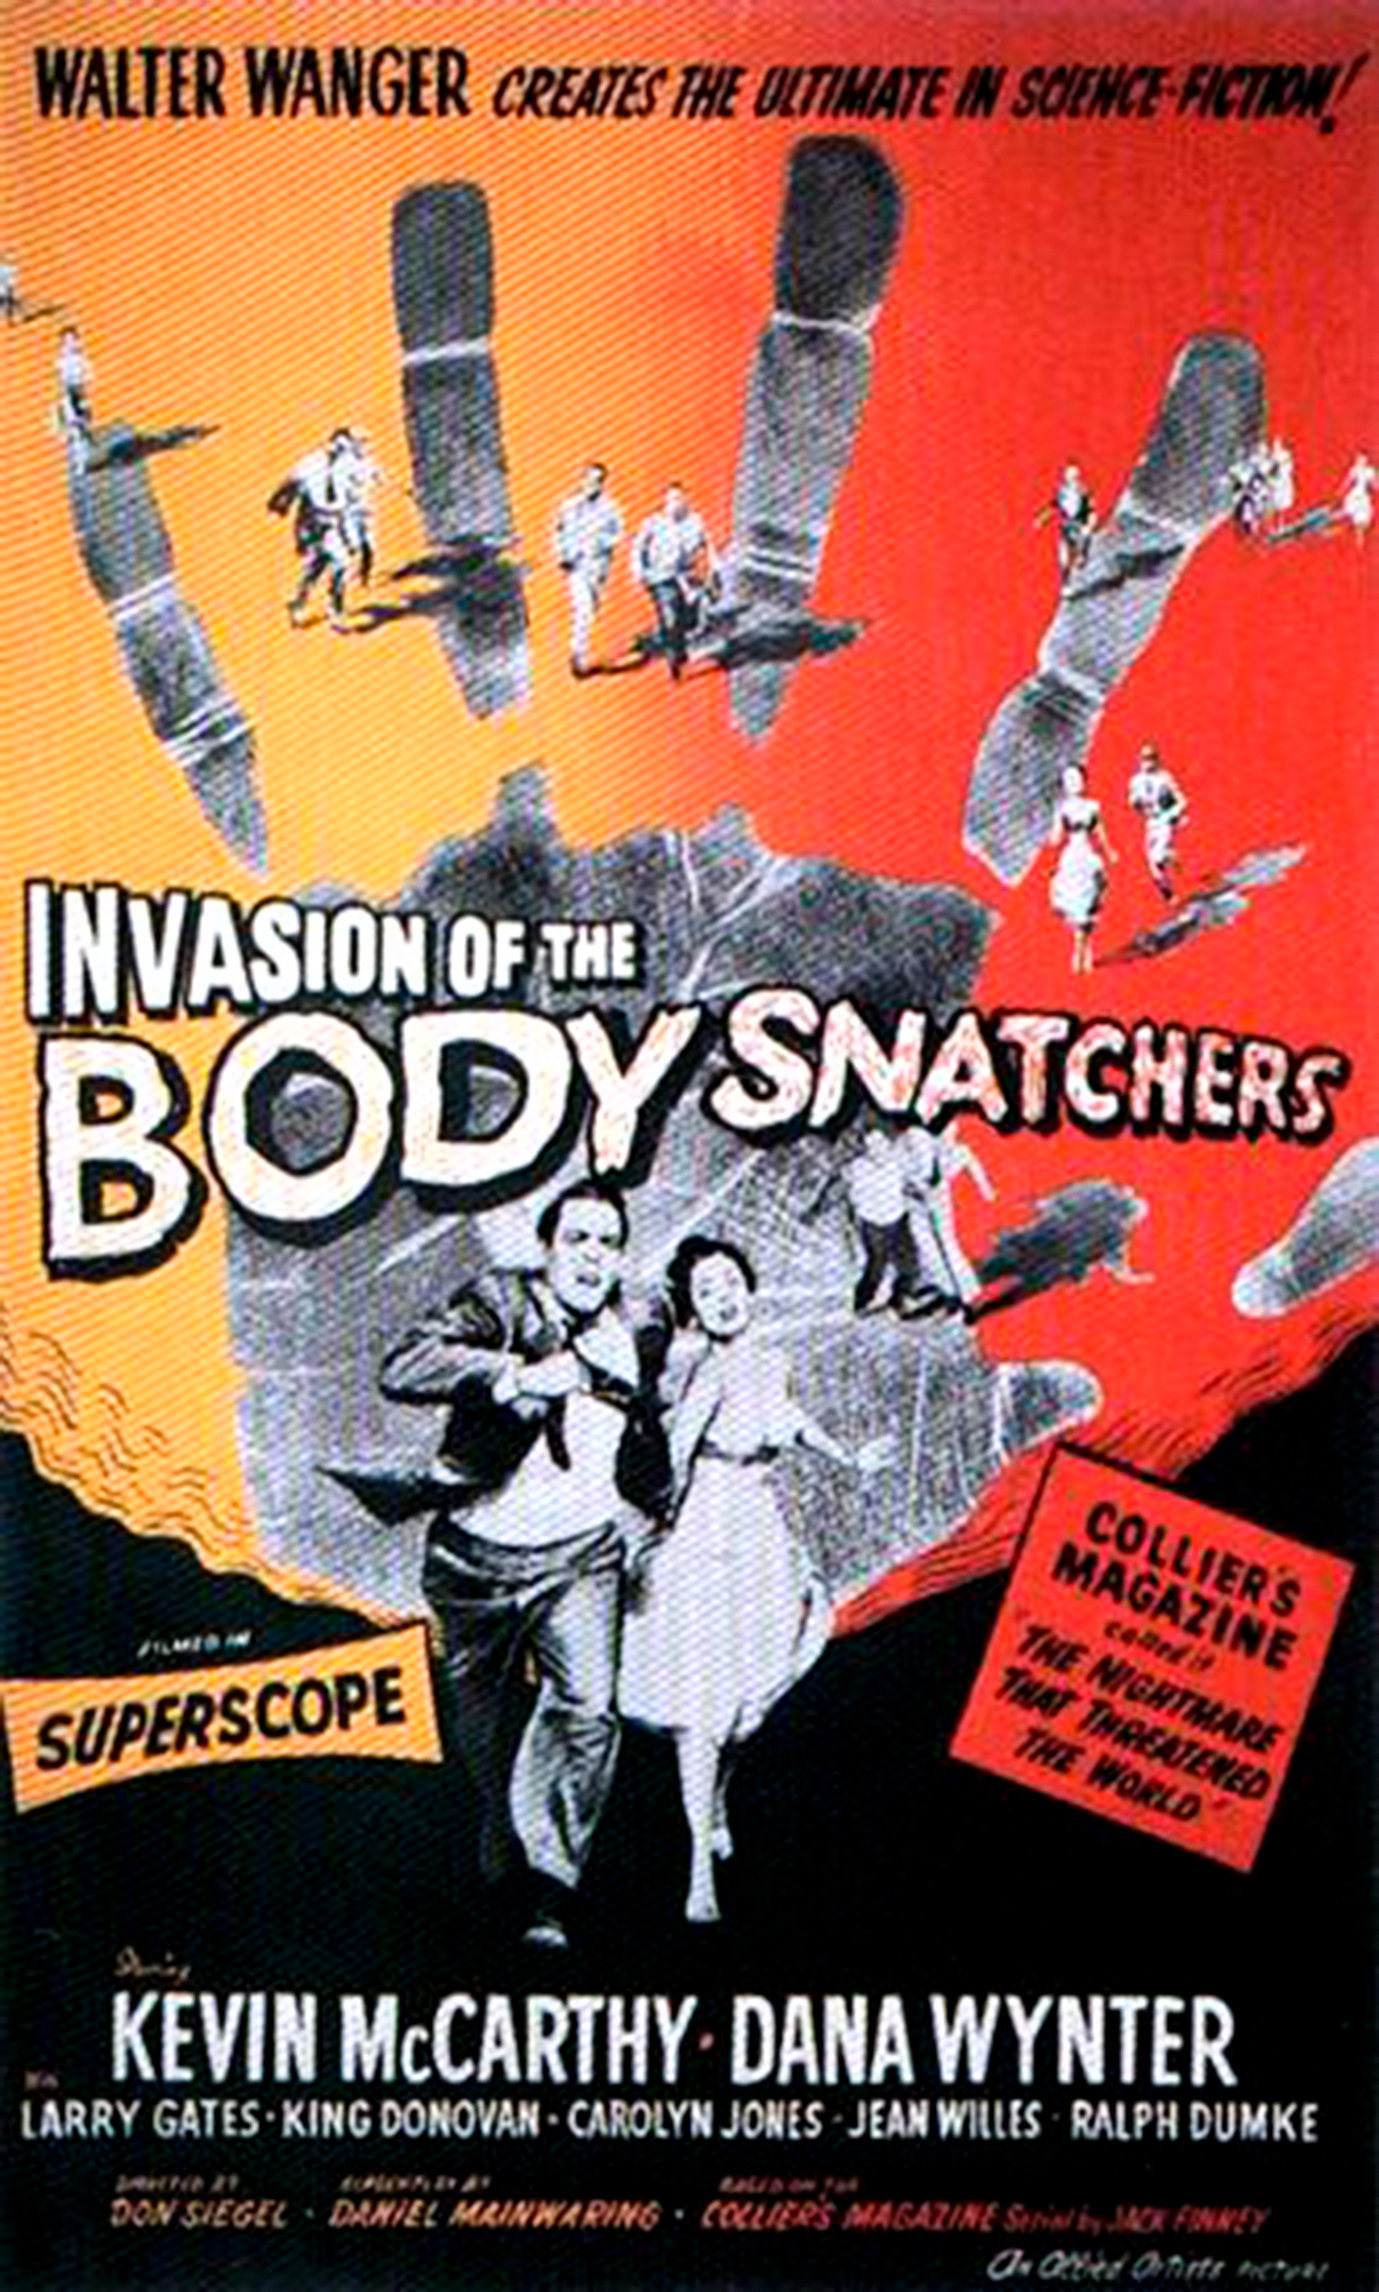 De Body Snatchers